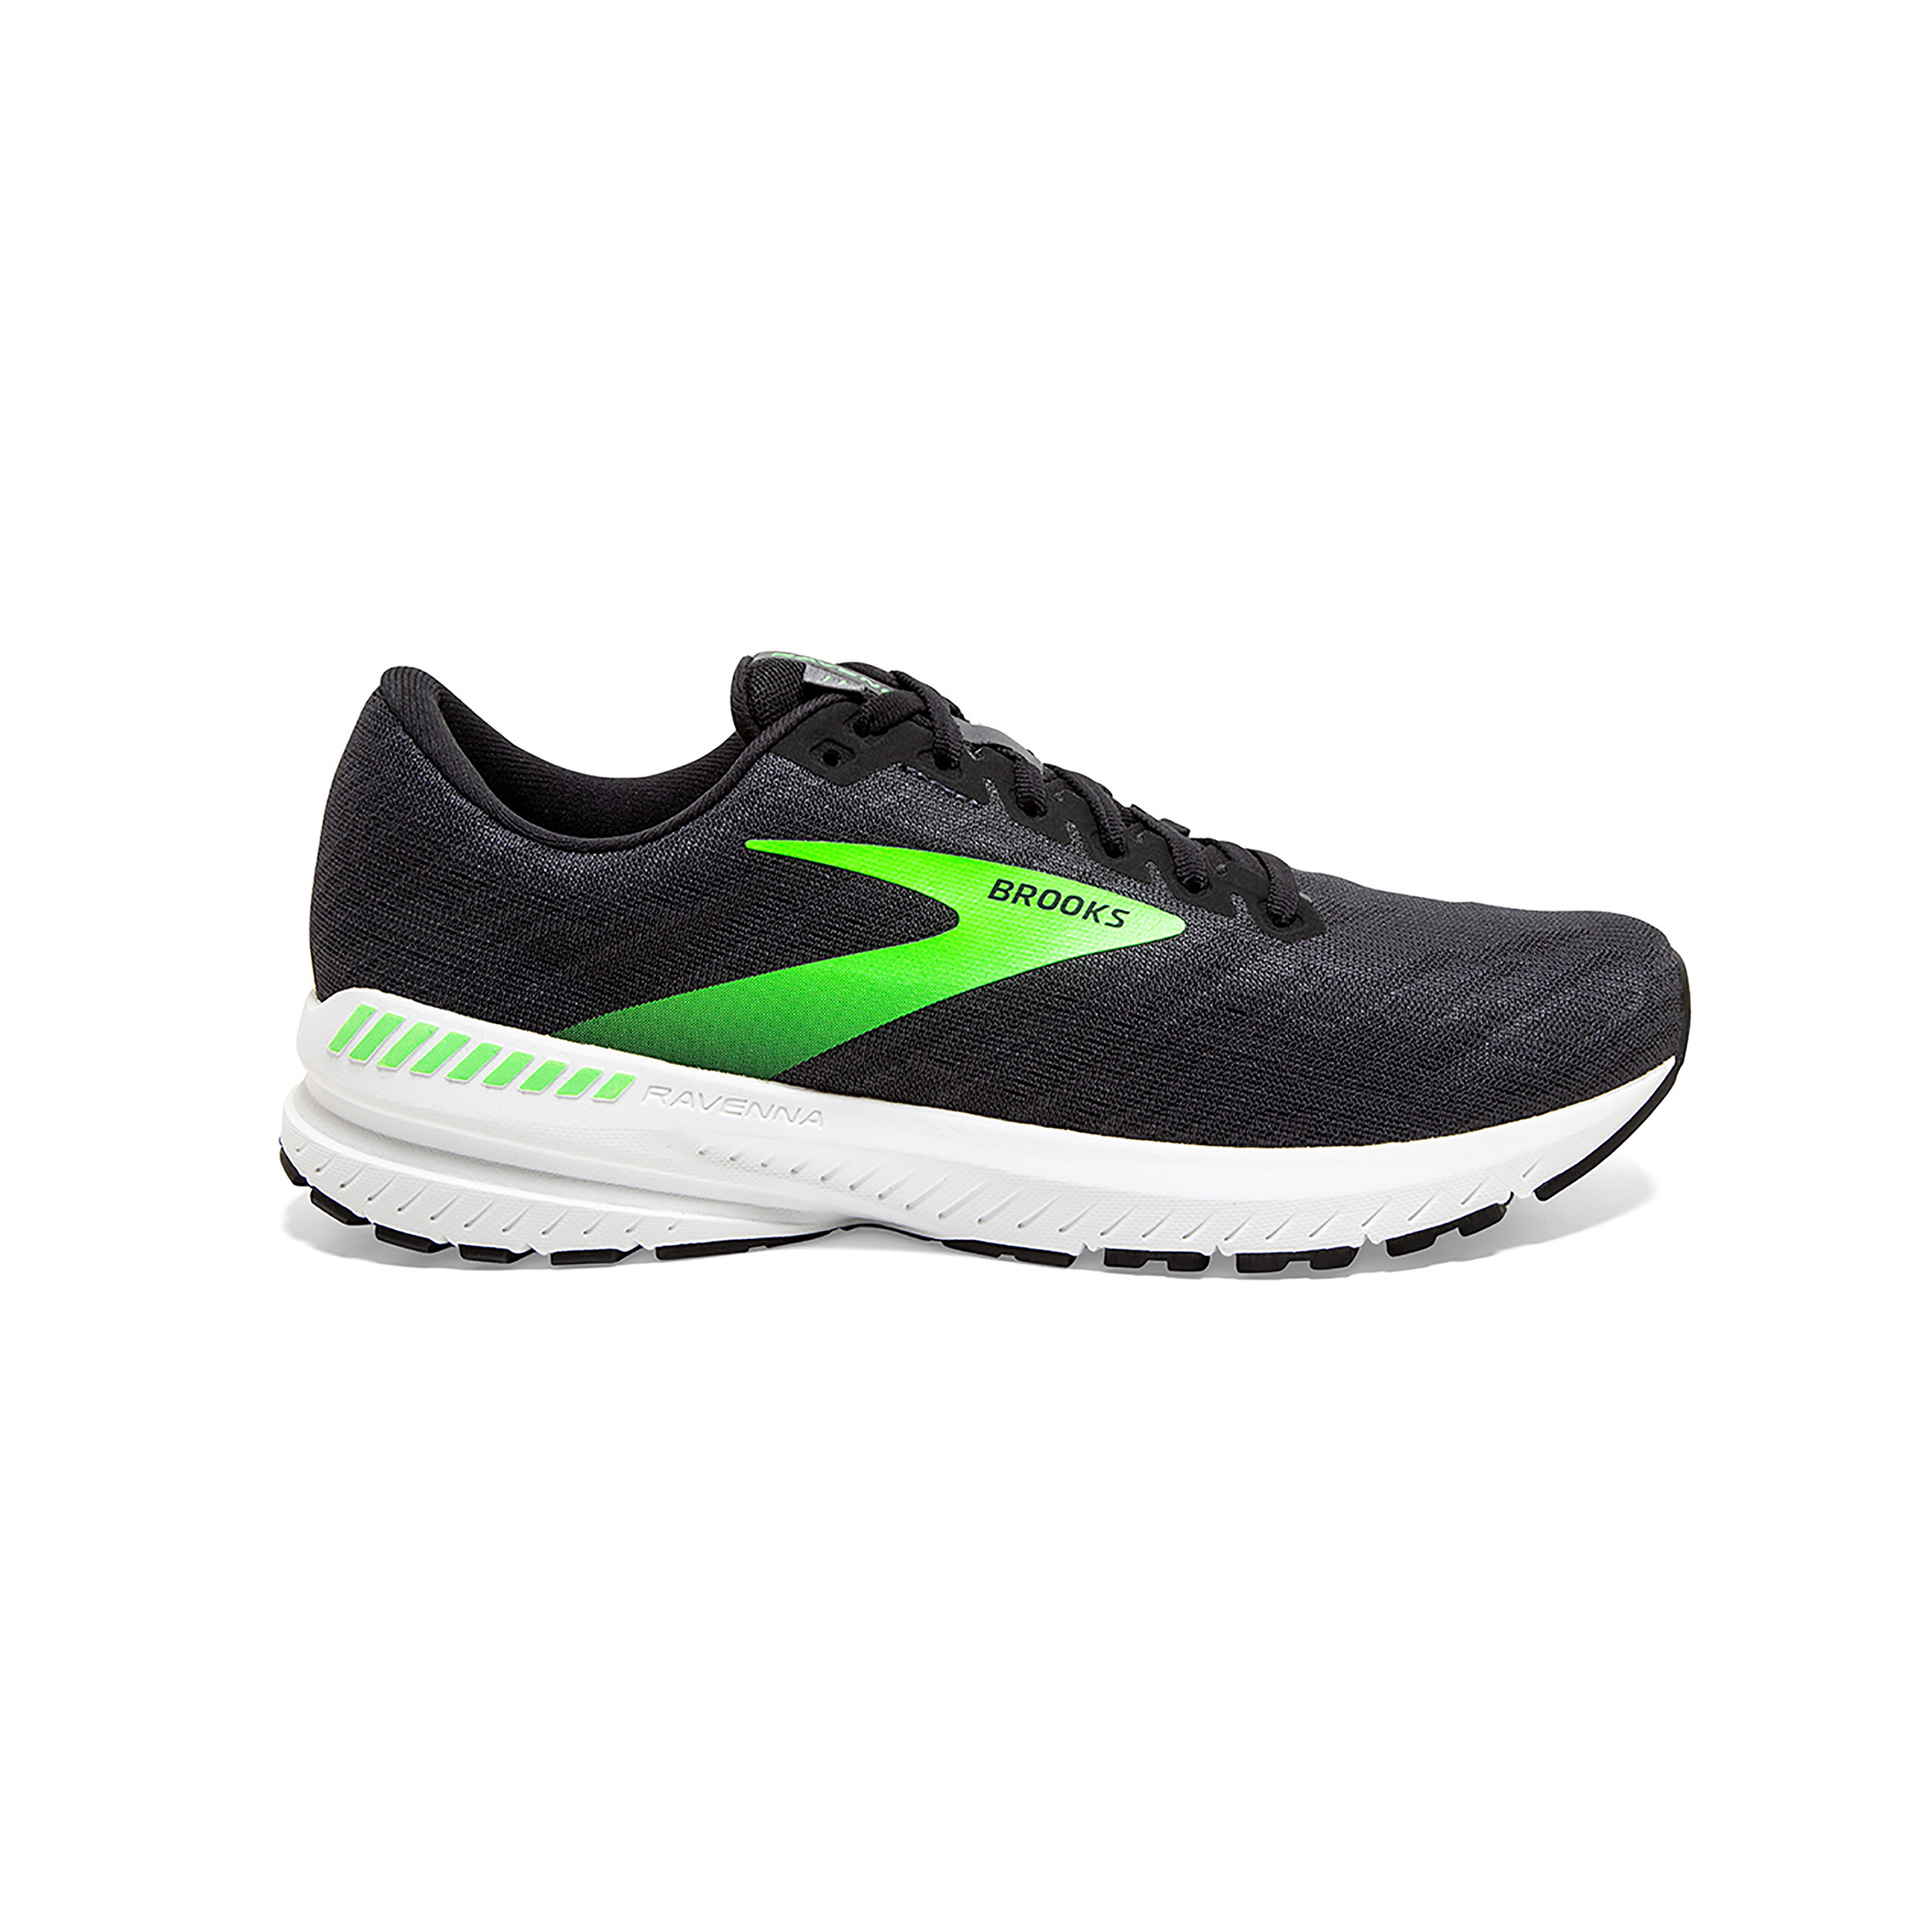 Men's Brooks Ravenna 11